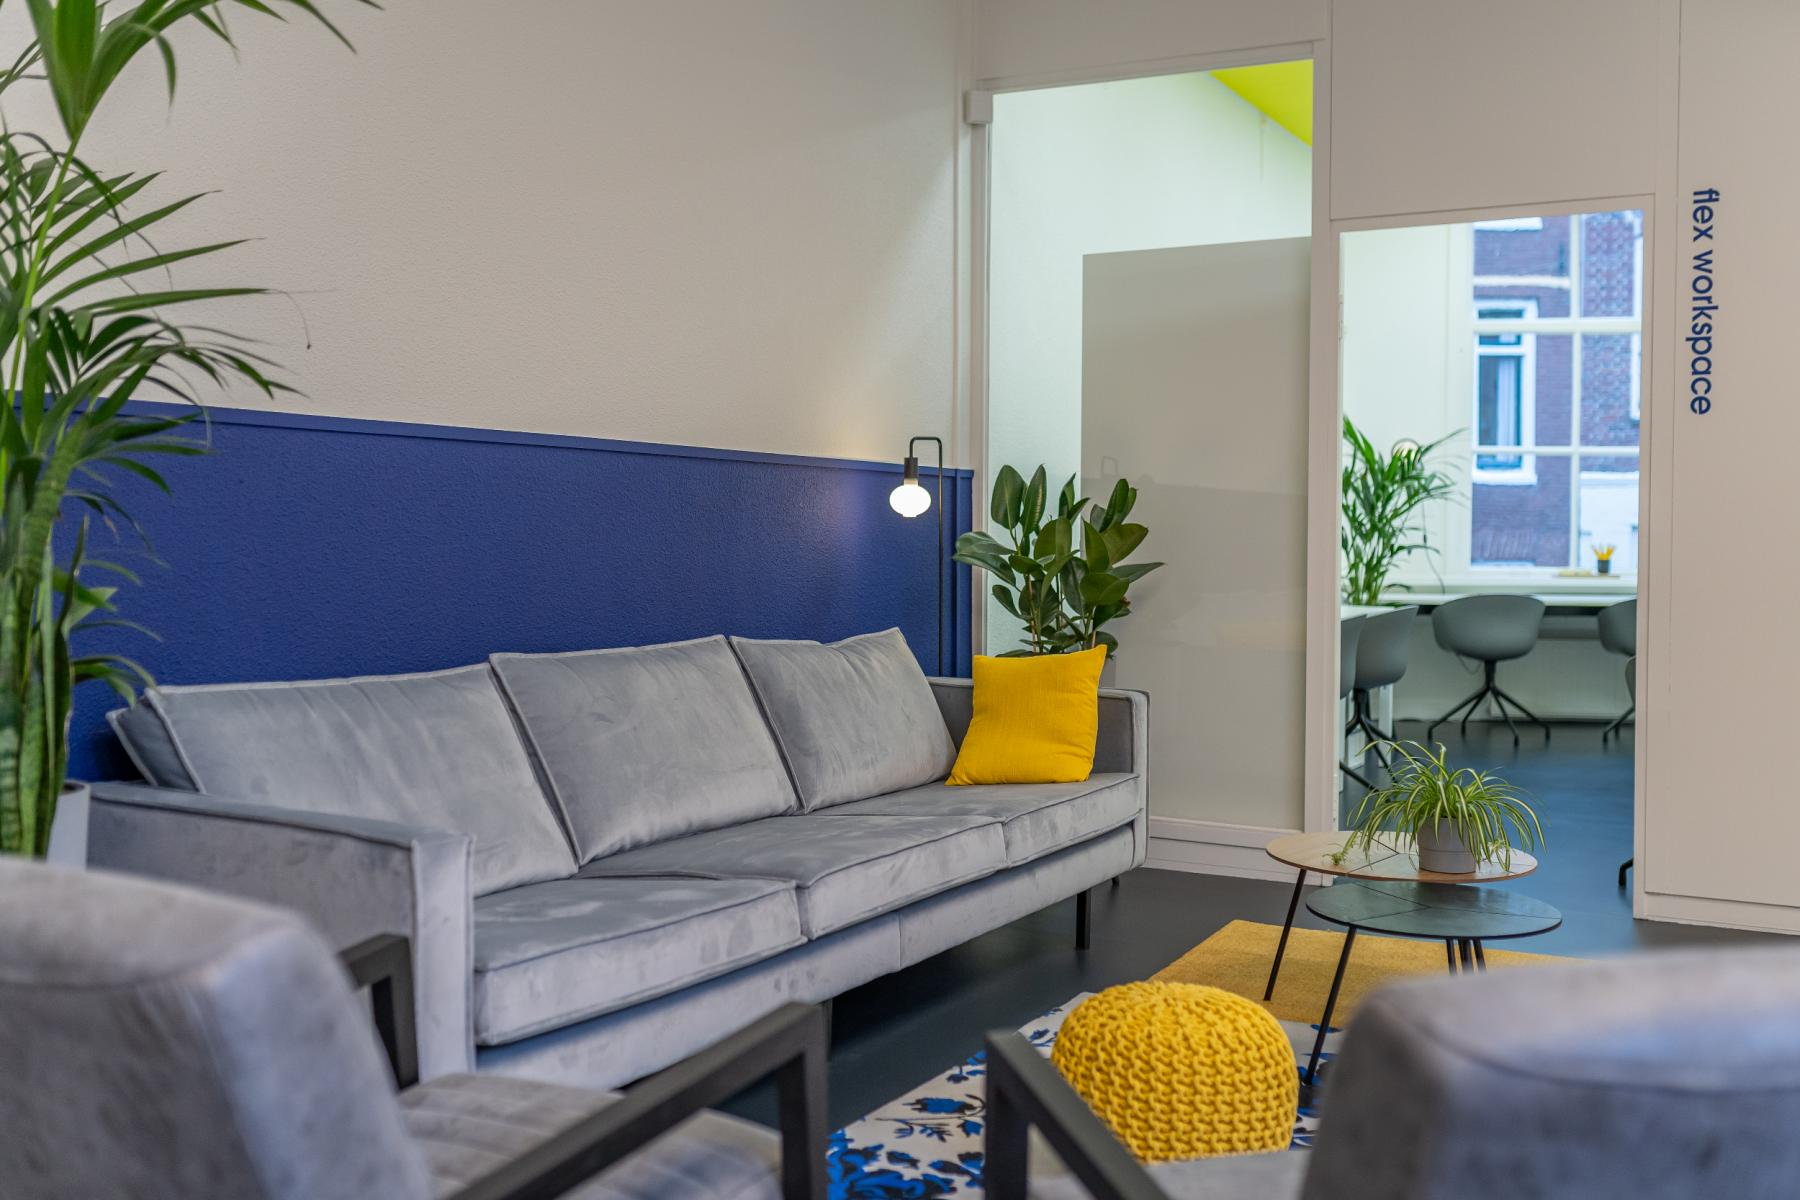 Rent office space Staalstraat 7a, Amsterdam (6)